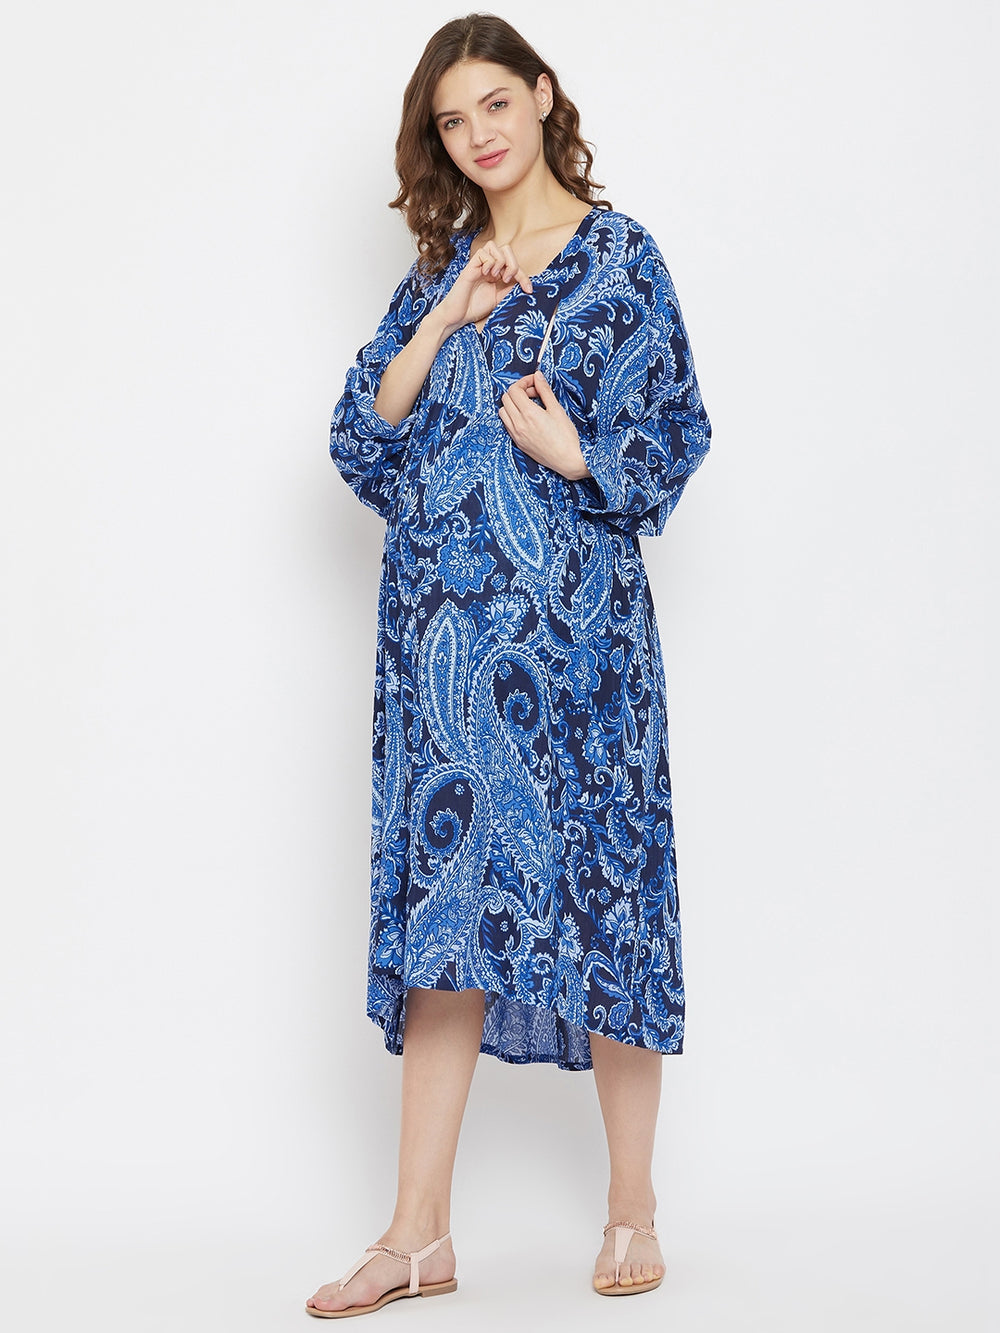 Cobalt Blue Paisleys Knee Length Maternity and Feeding Dress with Hi-Low Hem